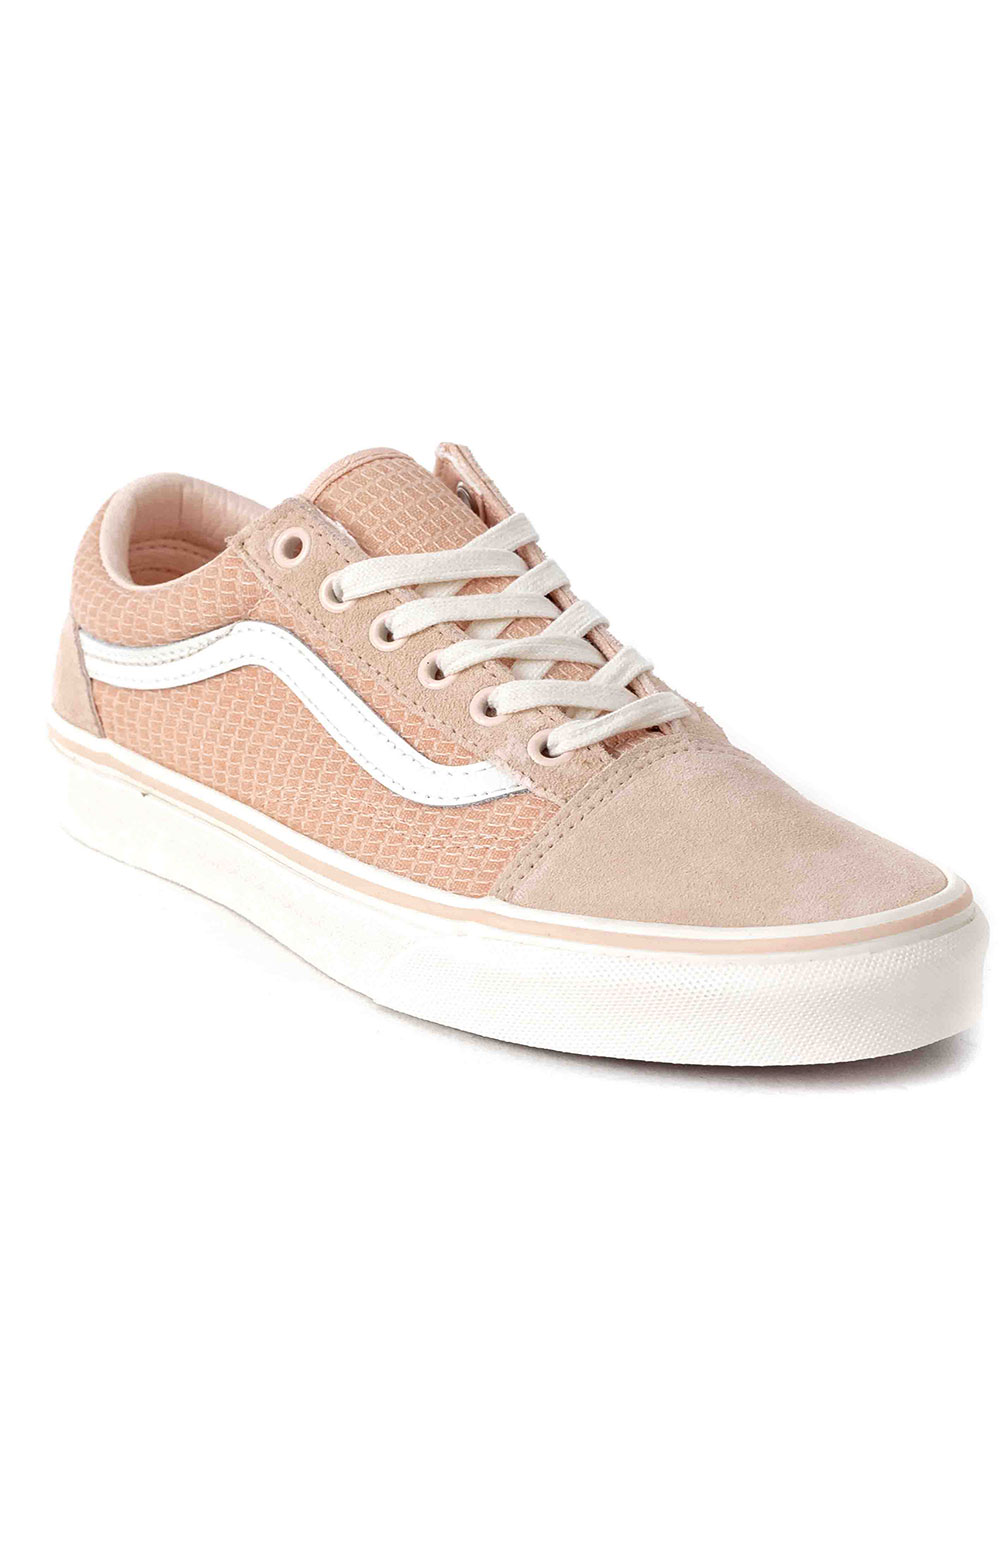 (U3BXF4) Multi Woven Old Skool Shoe - Pink  3